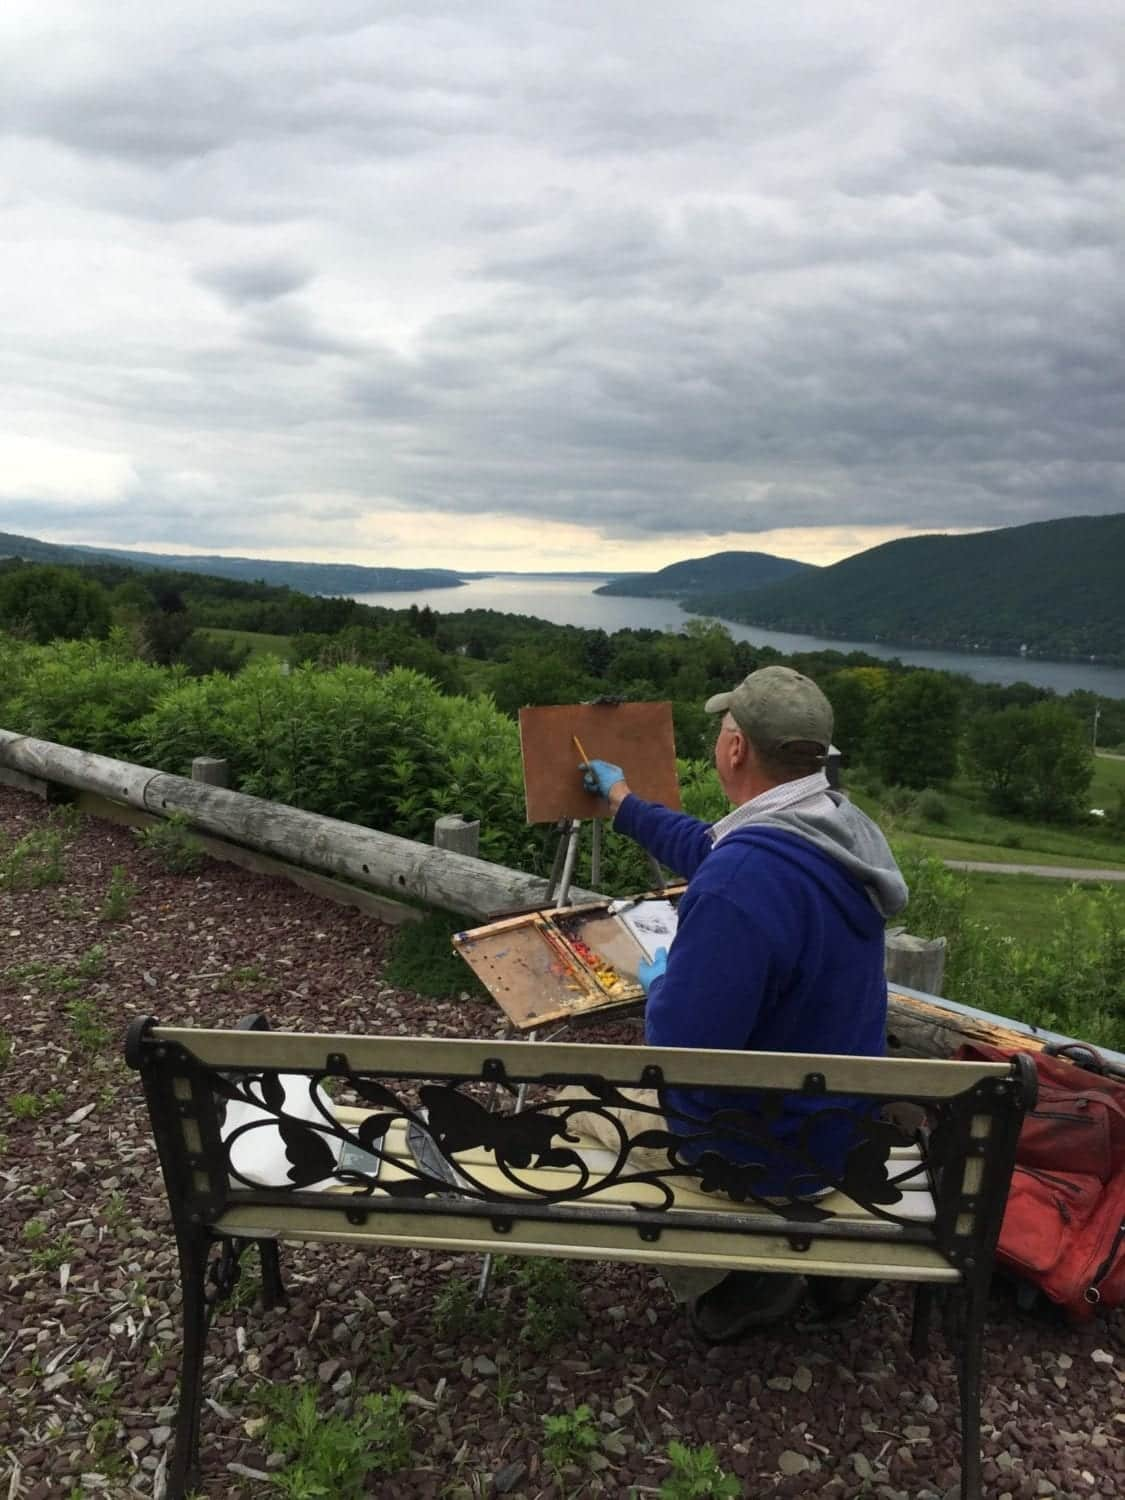 plein air painting of lake and mountains